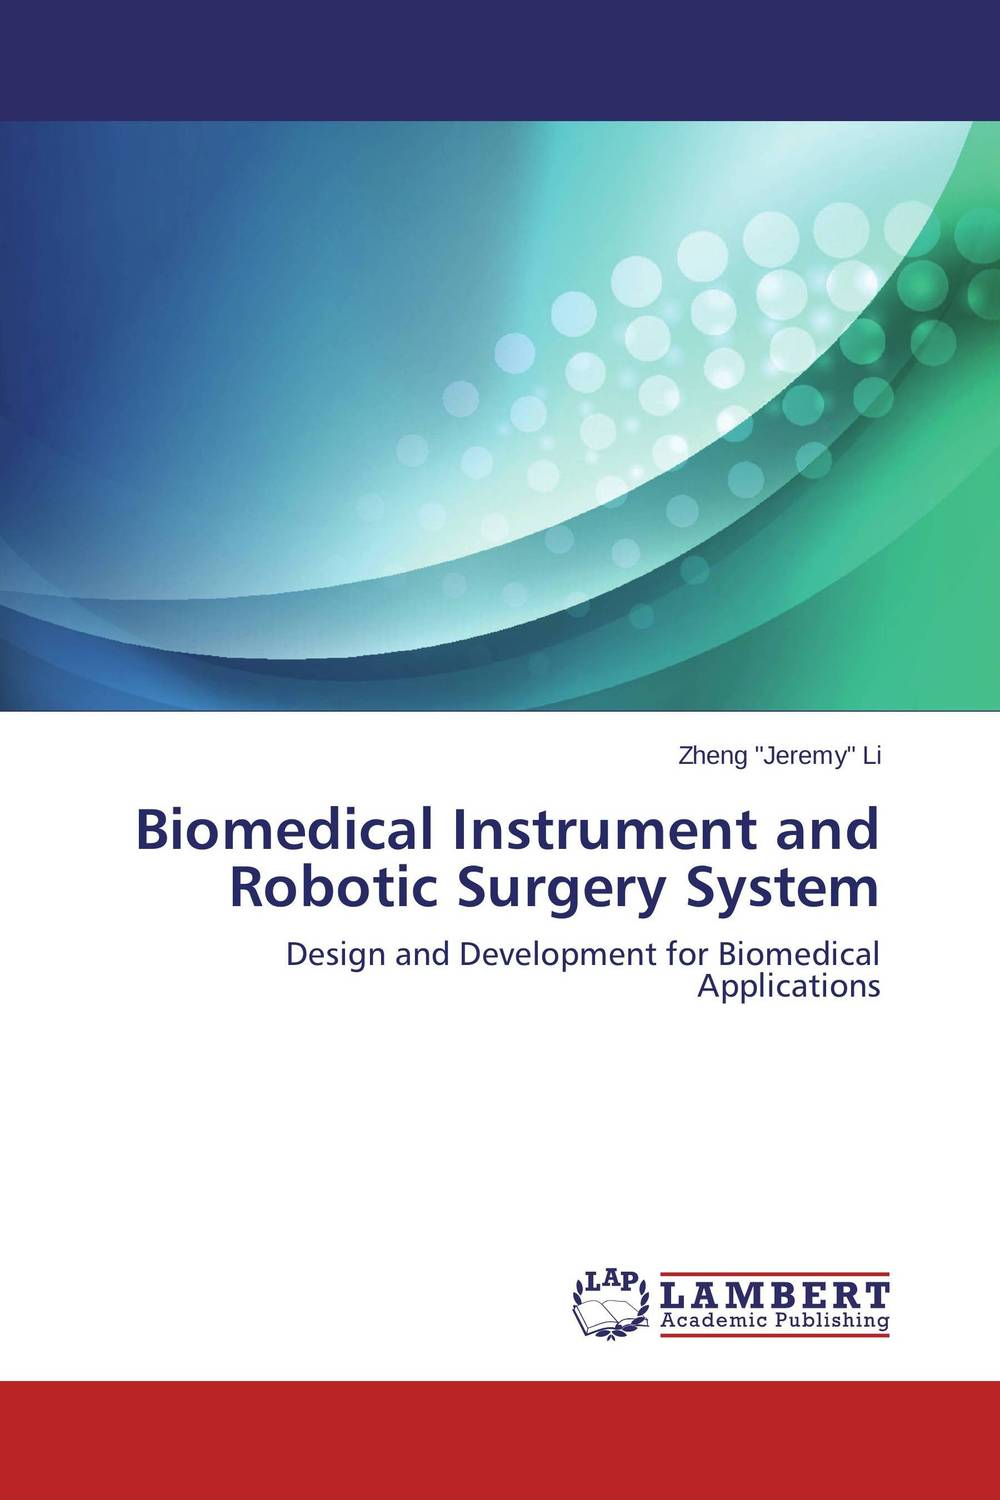 Biomedical Instrument and Robotic Surgery System